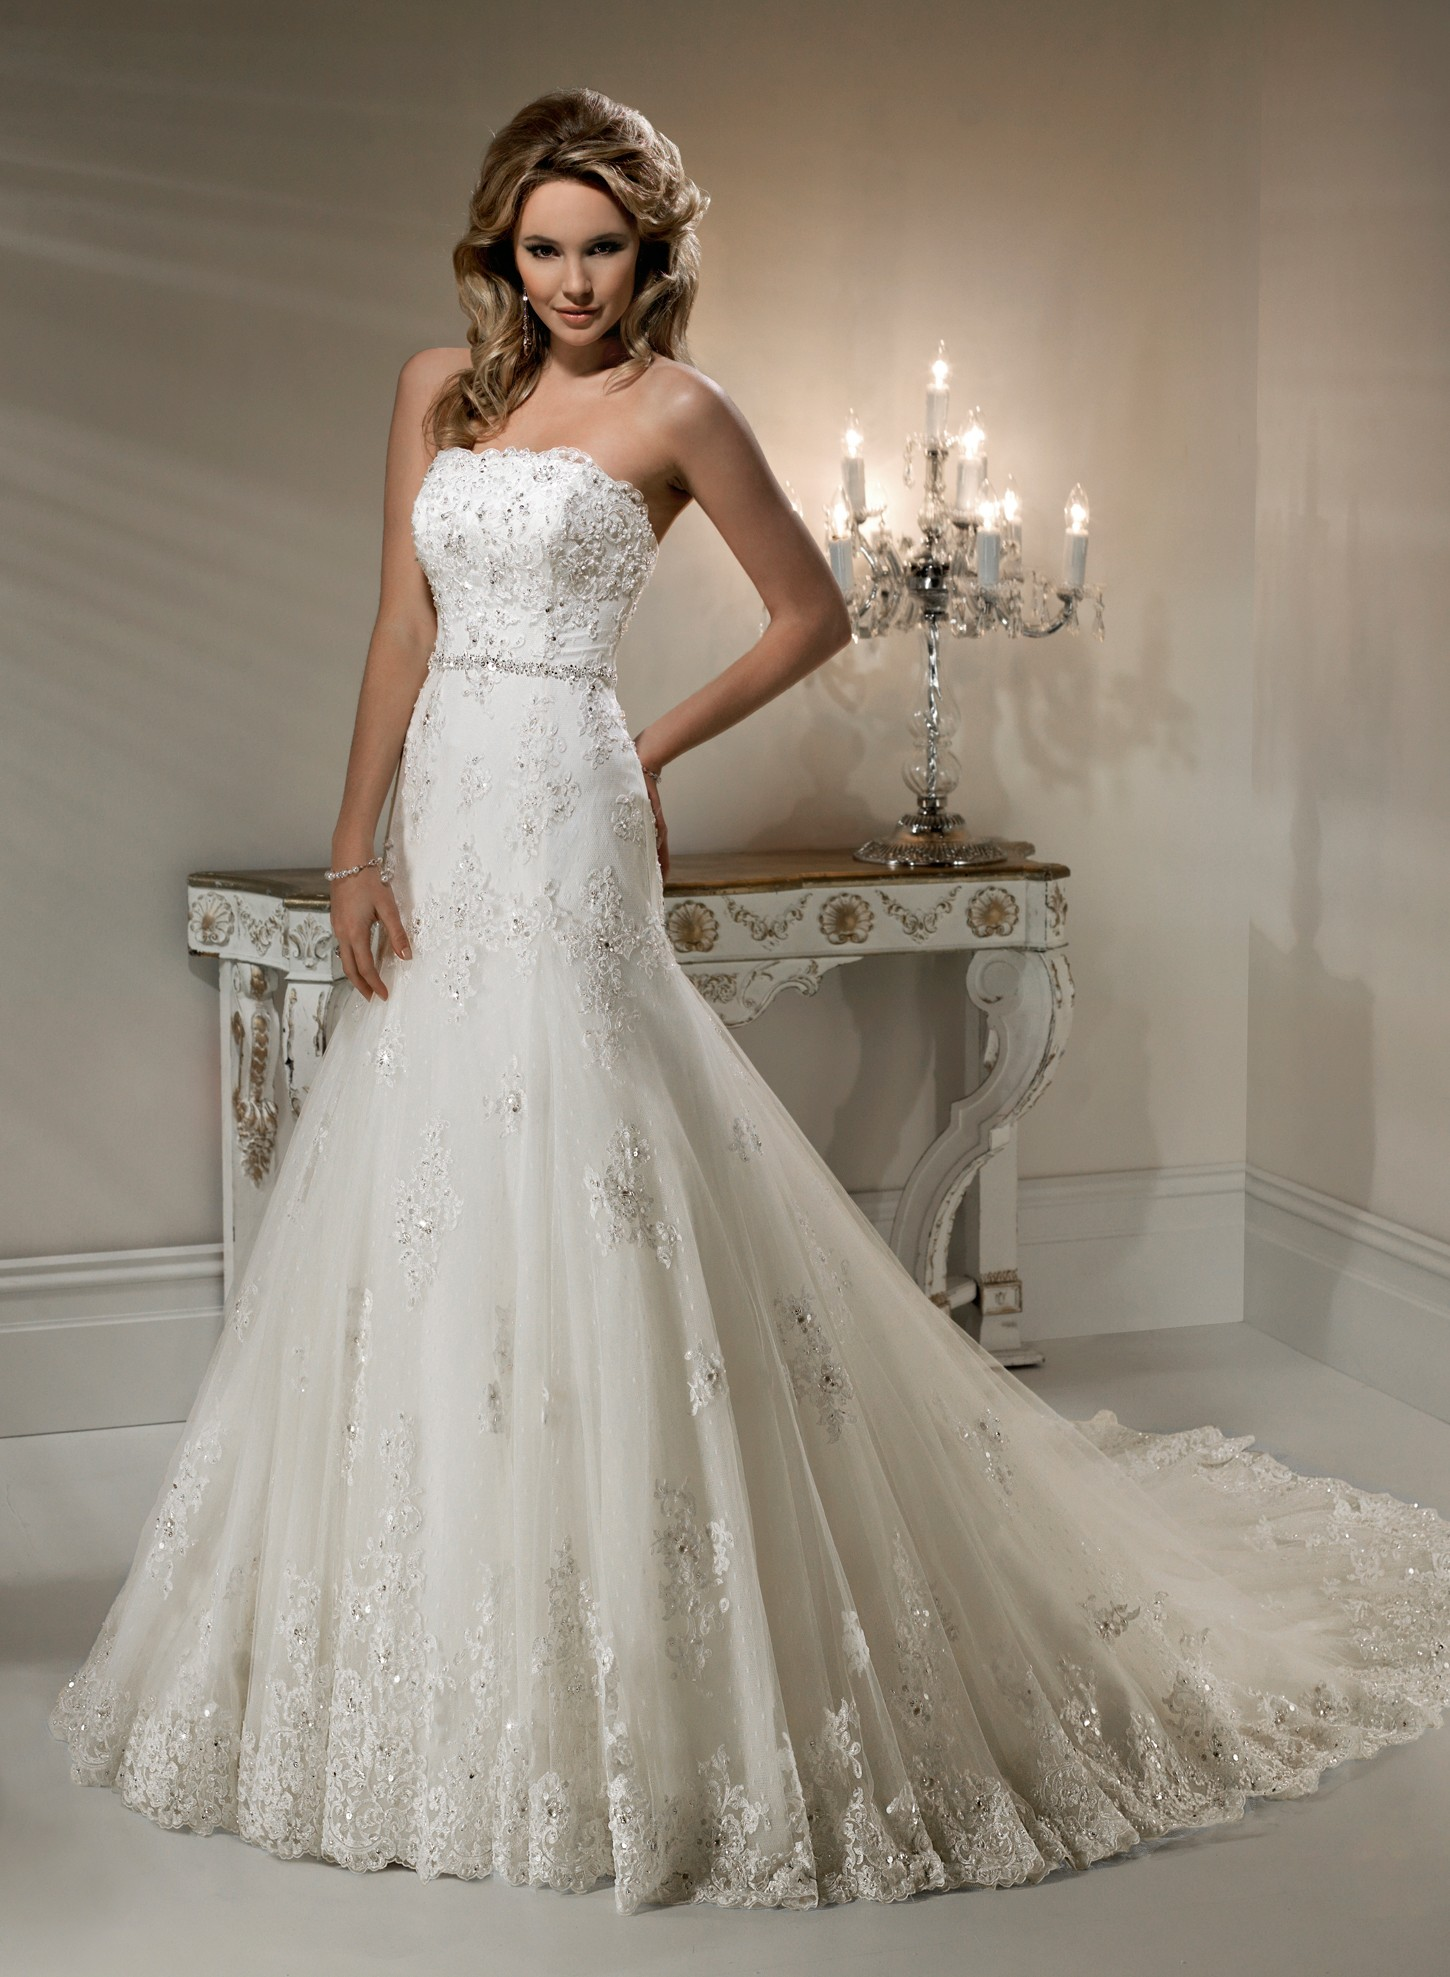 Lace A Line Wedding Dressescherry Marry Cherry Marry